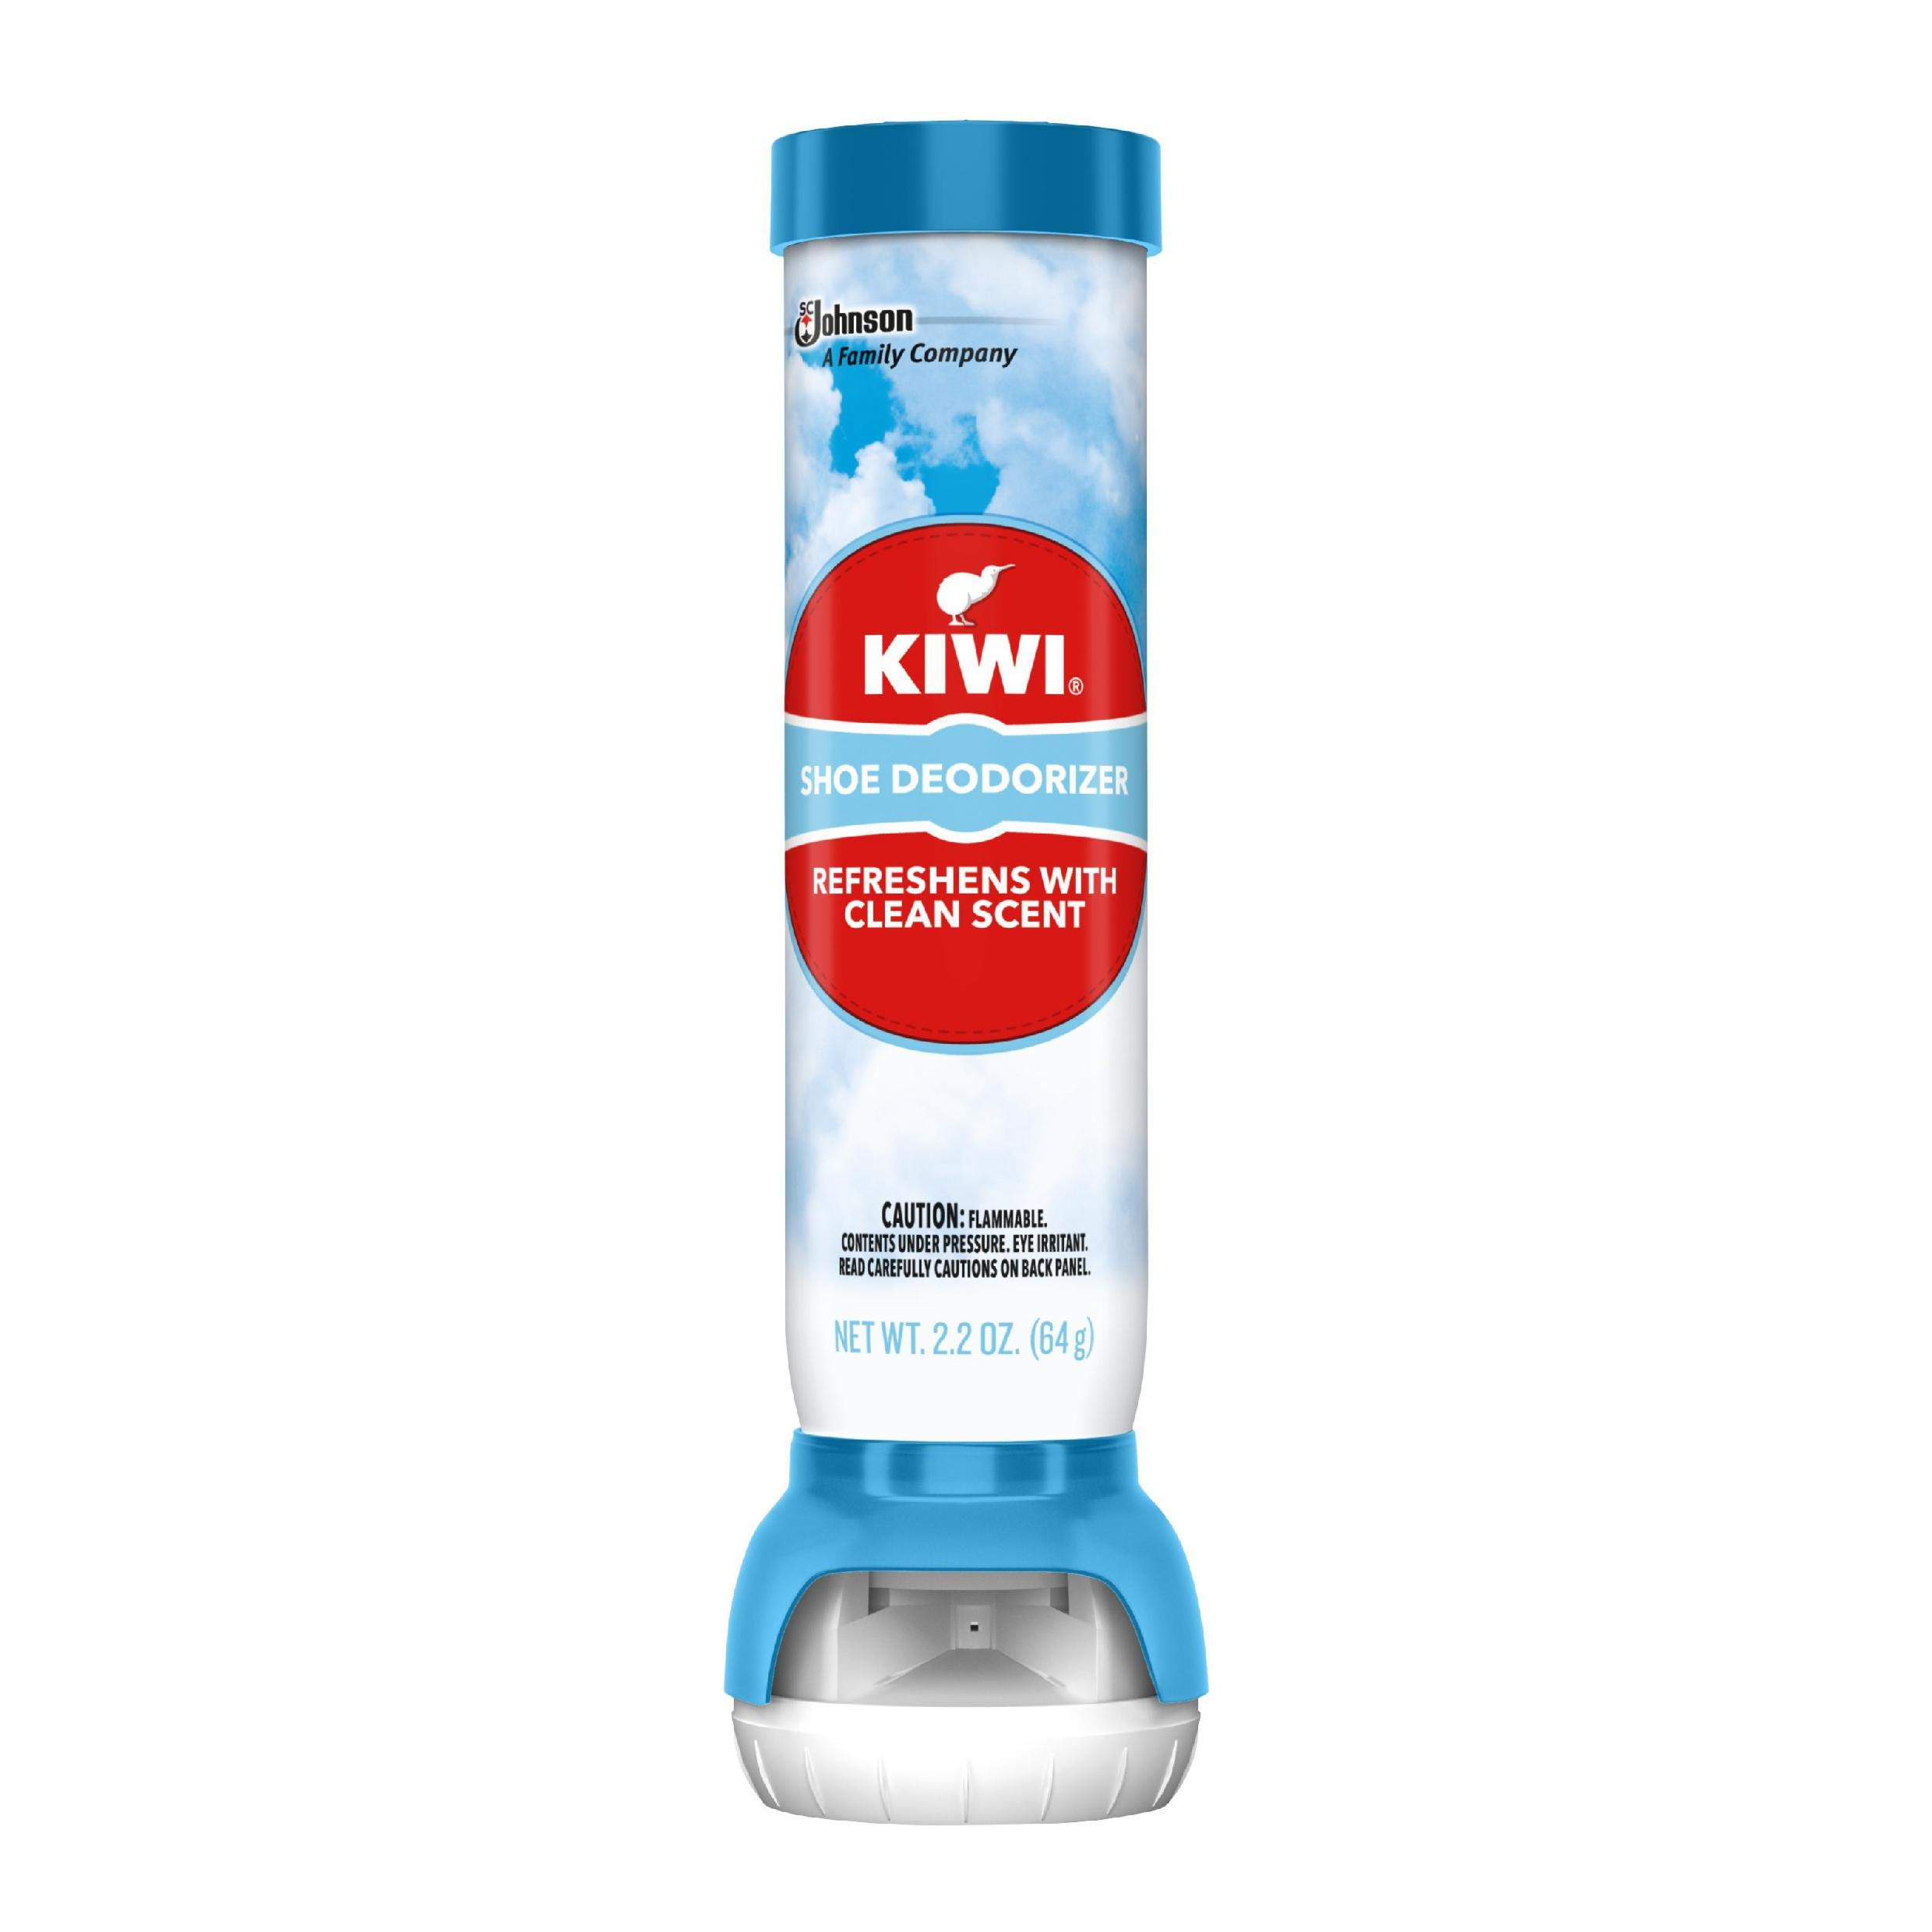 SaraLee/Kiwi Fresh Force Shoe Refresher, Powder Fresh Scent, 2.2 oz, 3-Pack by Kiwi